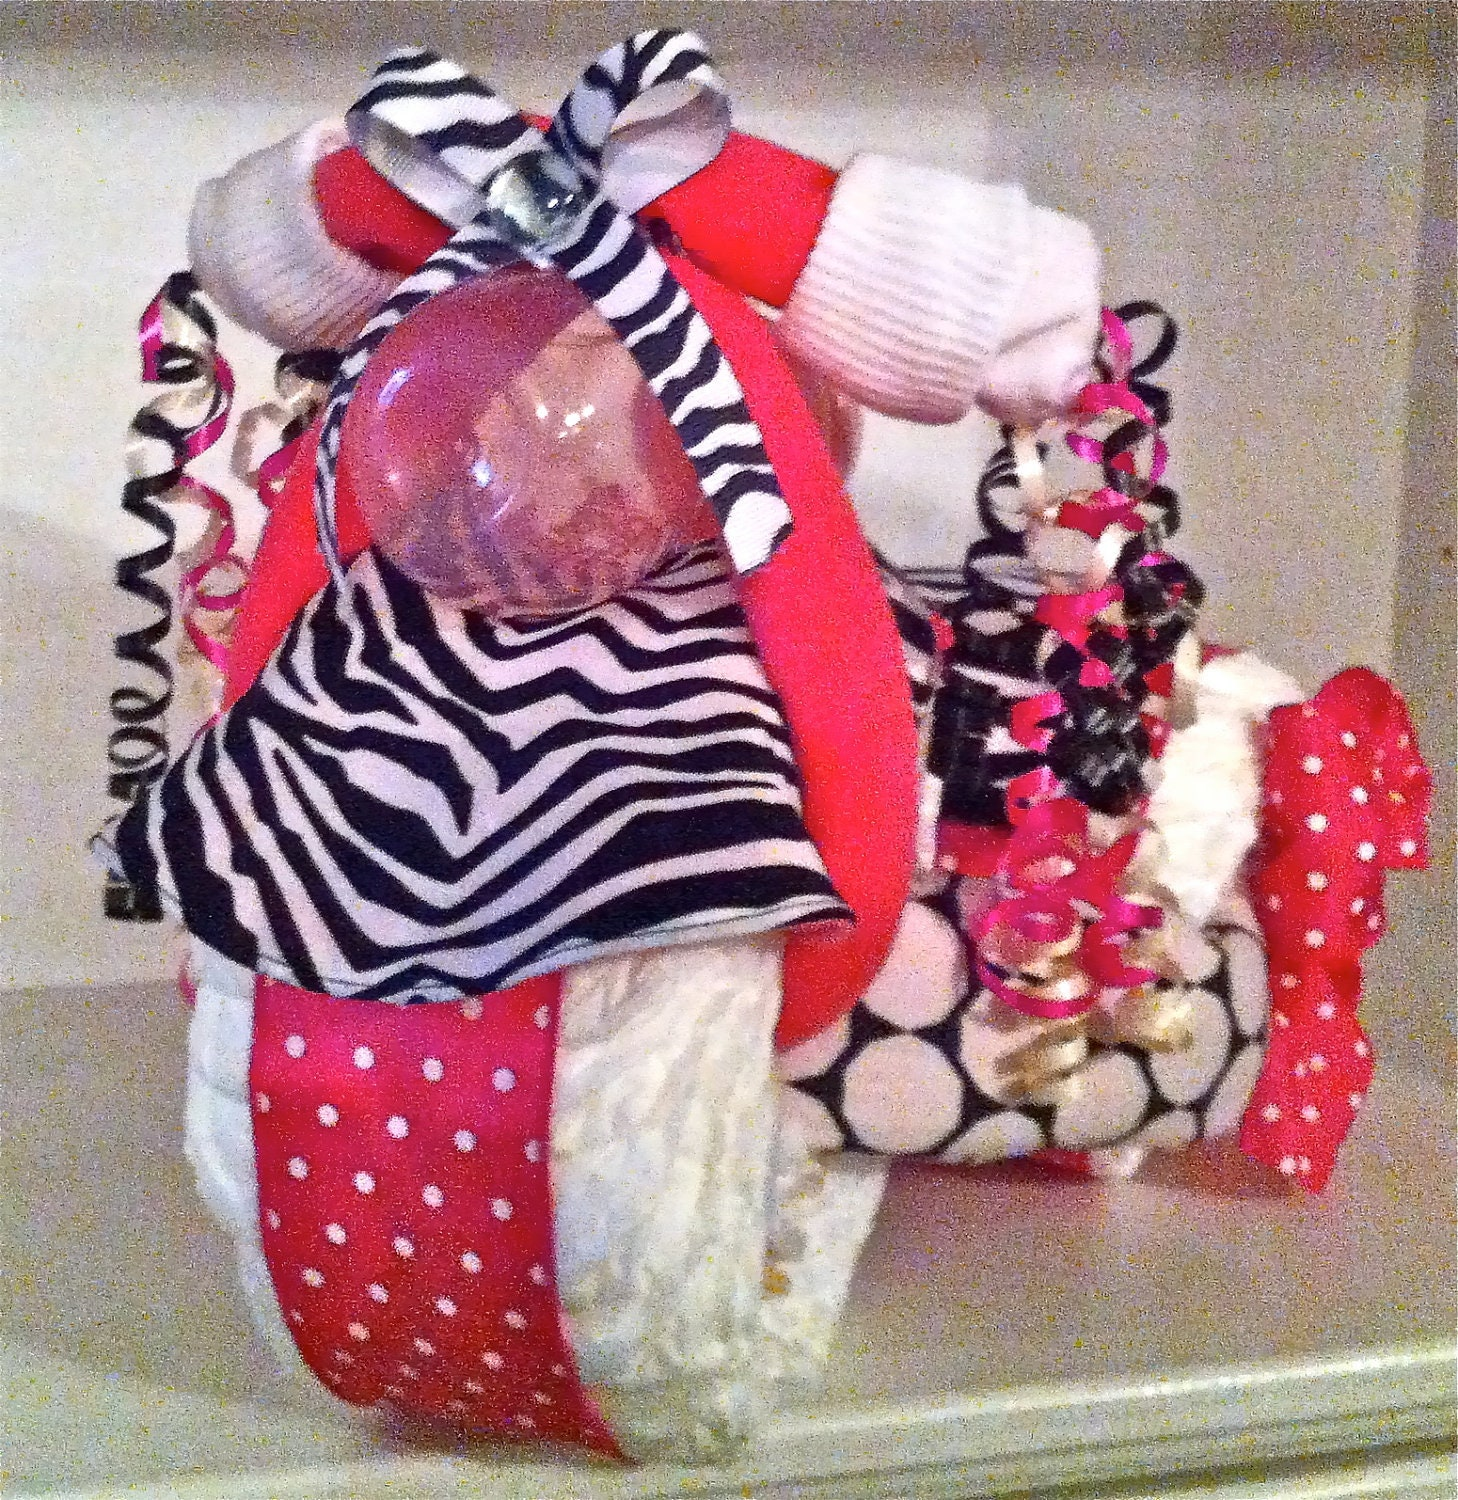 Zebra Print Amp Hot Pink Tricycle Diaper Cake With Personalized